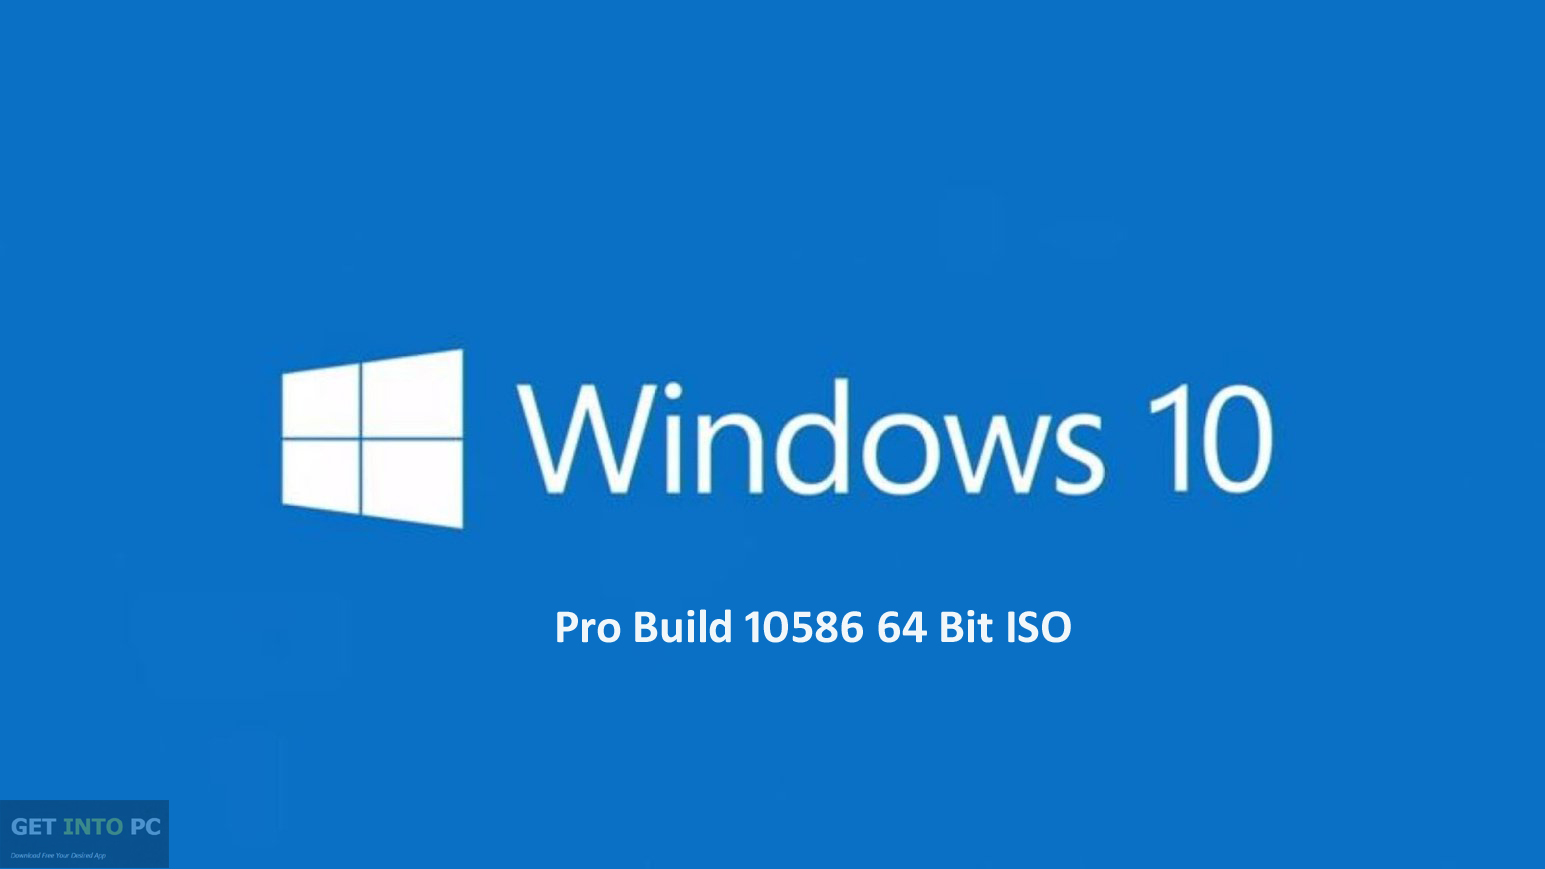 Arduino software free download for windows 10 64 bit